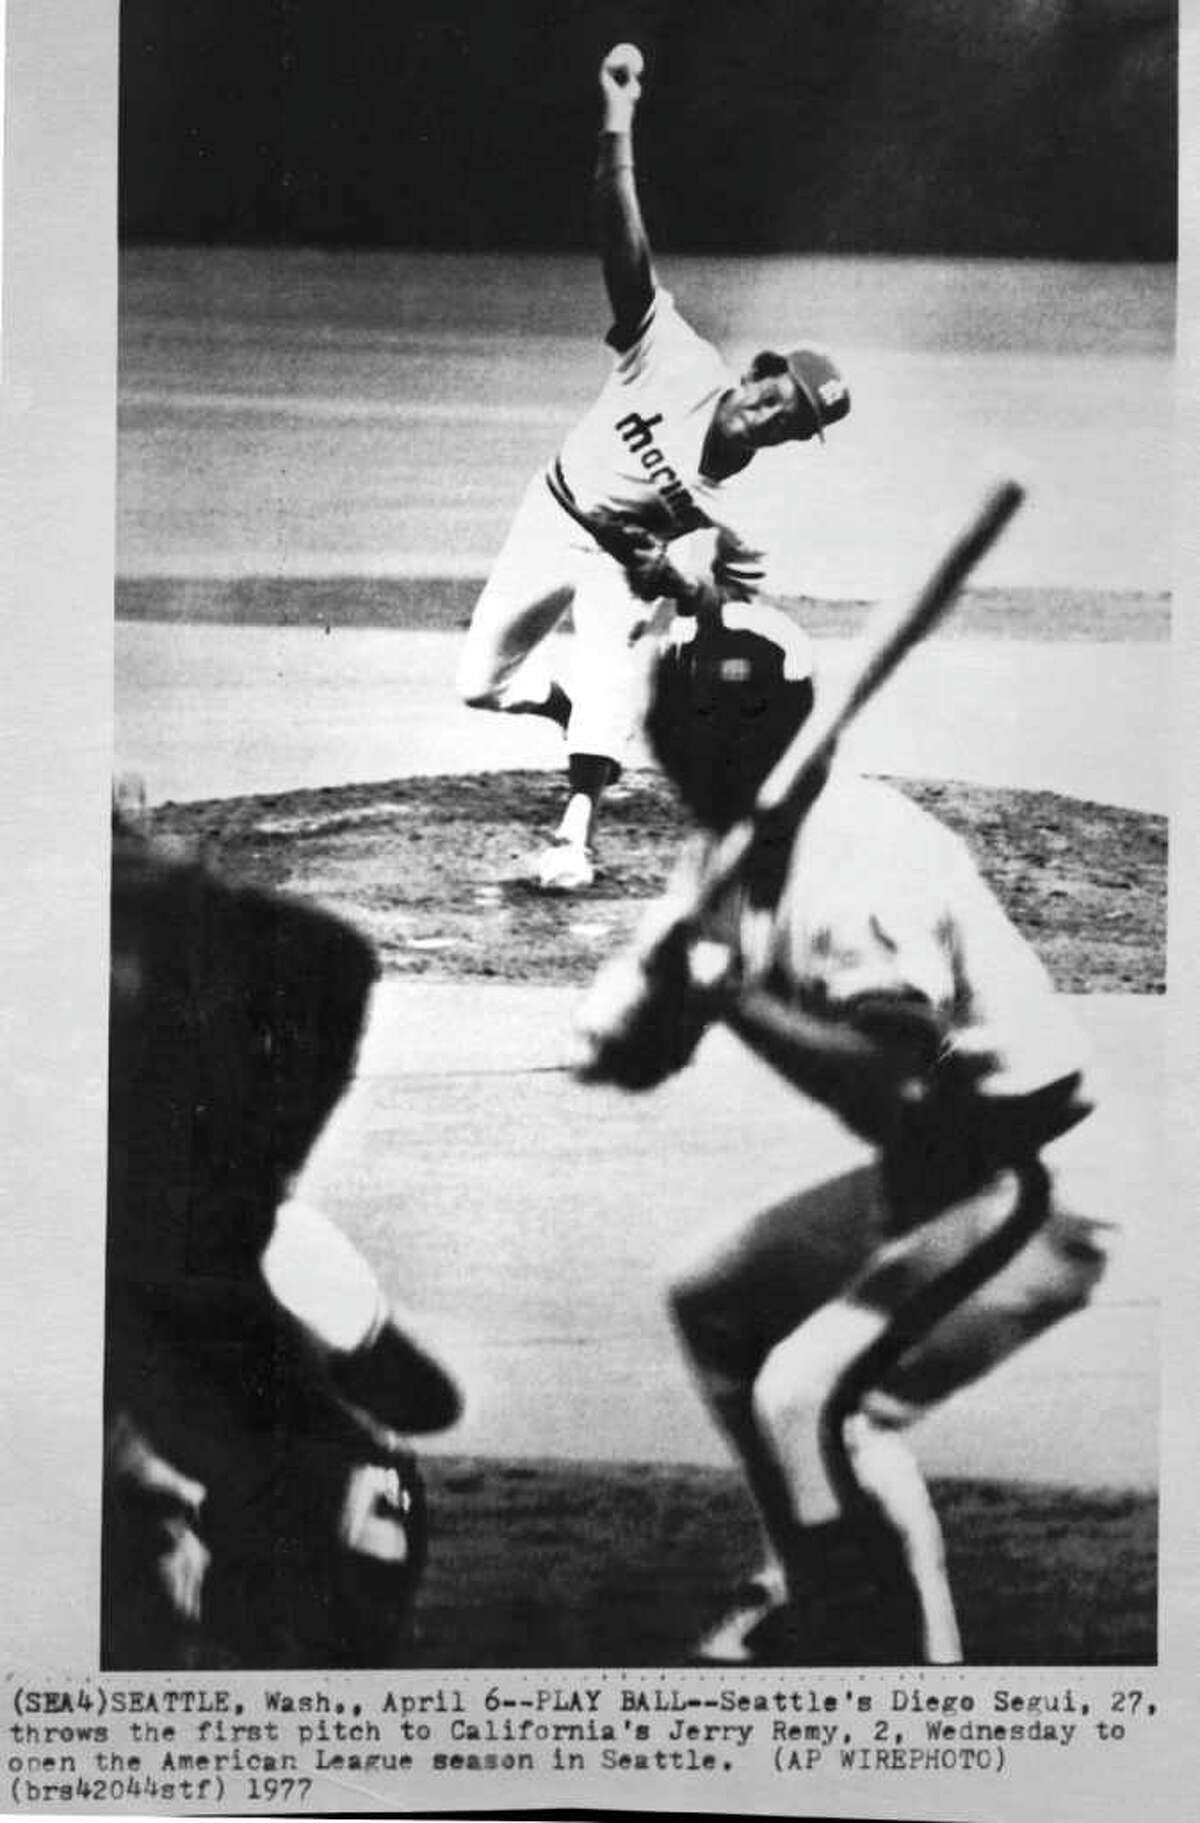 Diego Segui's first pitch in the team's first season was full of hope. Unfortunately, the 1977 Mariners were not full of talent. They managed to drop nine games from Aug. 7-15.